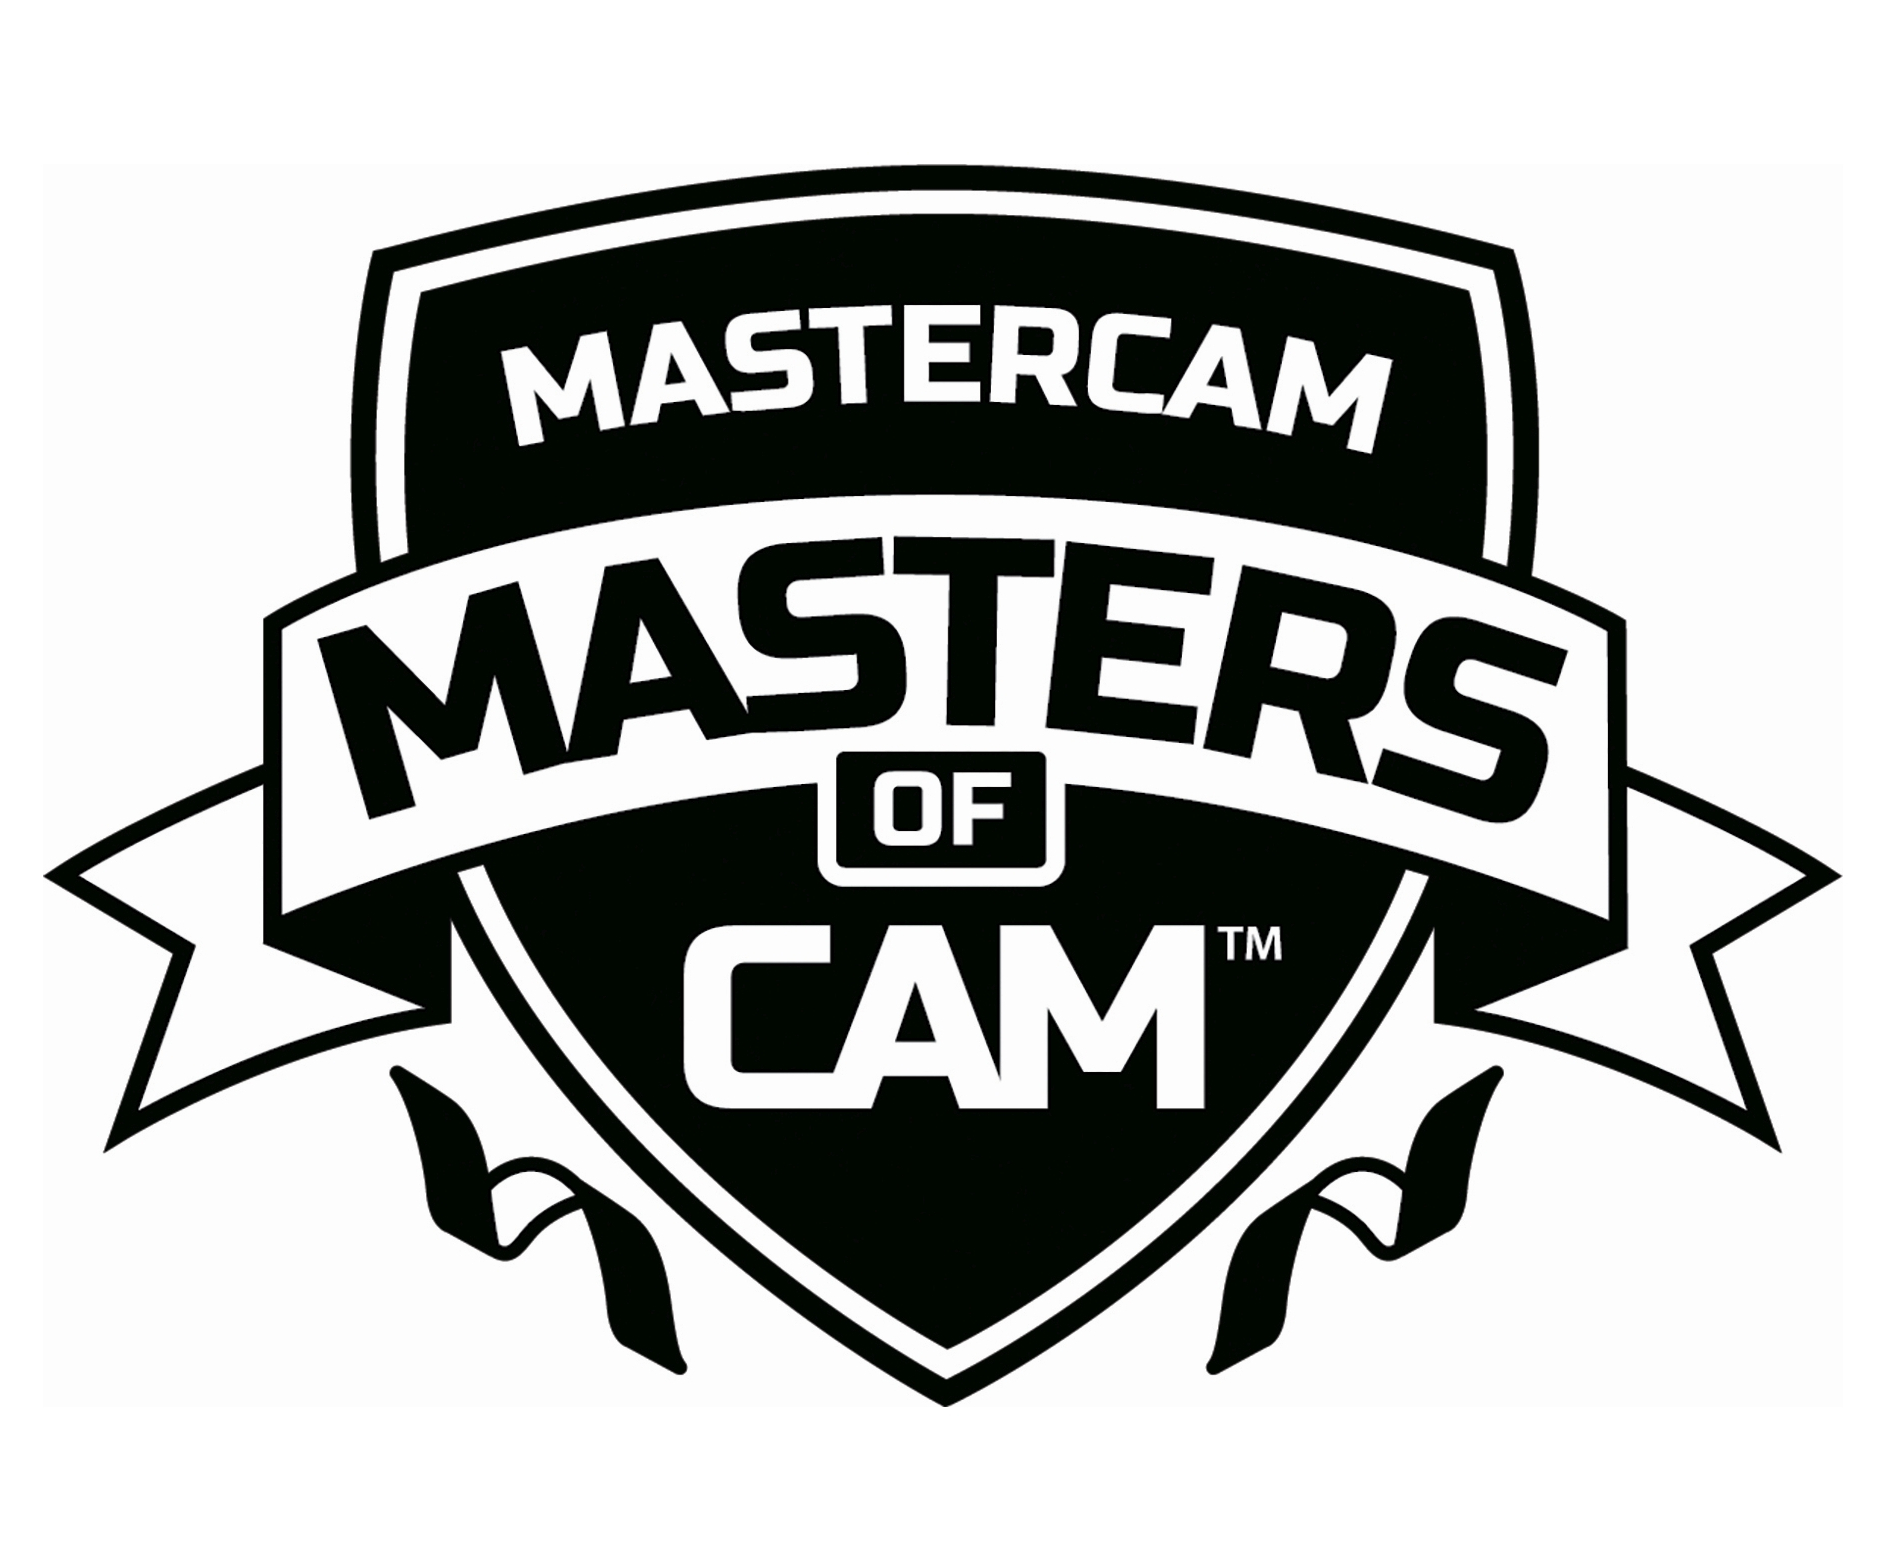 Mastercam Launches Website for User-Generated Content